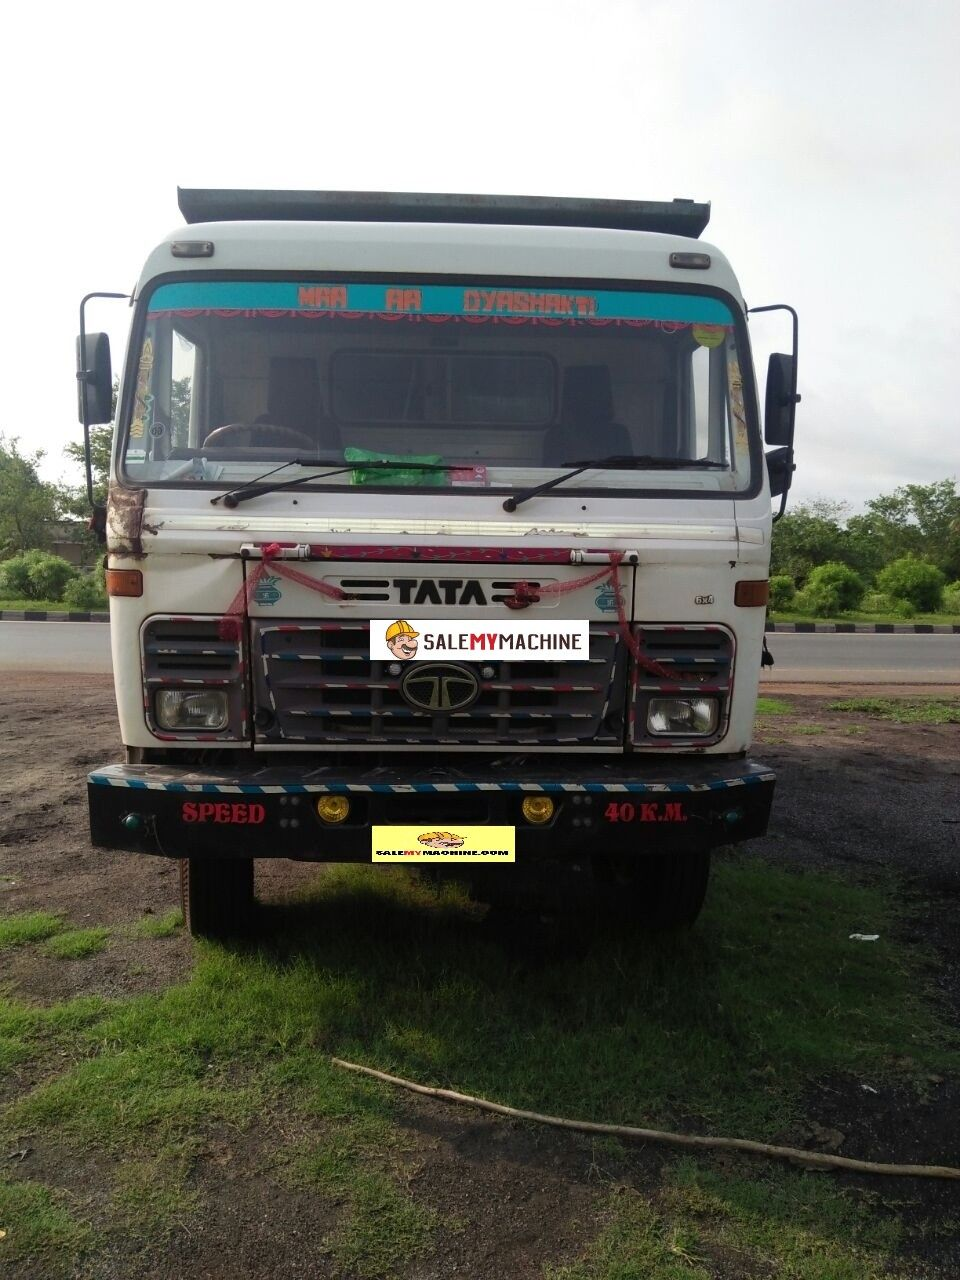 USED CONSTRUCTION EQUIPMENT FOR SALE IN INDIA. USED TATA 2518 HYVA FOR SALE  IN chhatishgadh AT salemymachine.com